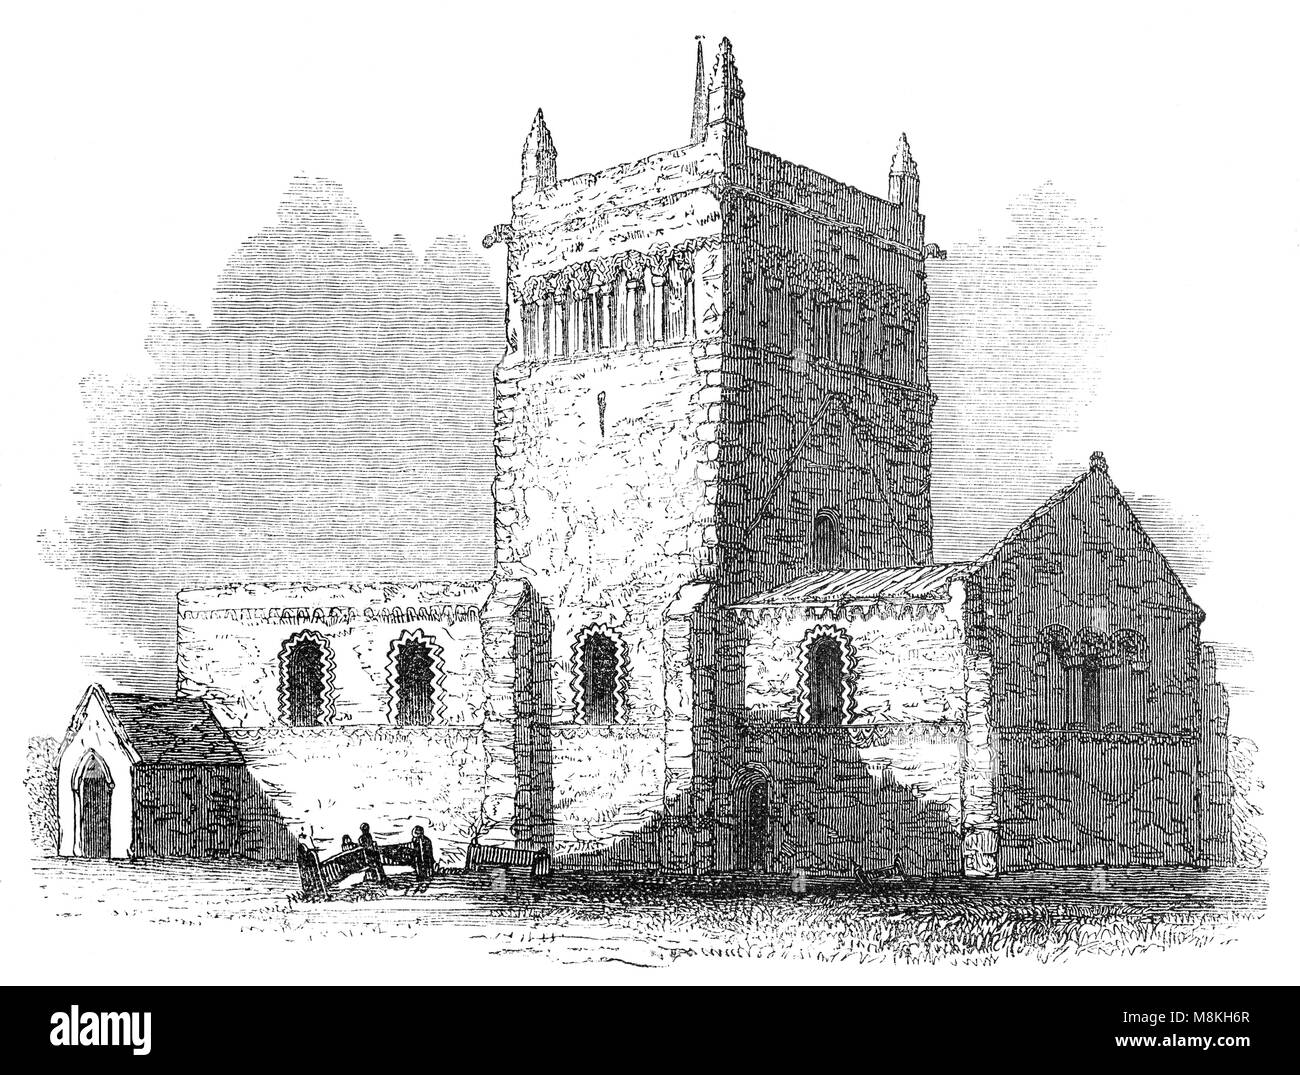 The Church of England parish church of 'St Michael and All Angels' in Stewkley, in the Aylesbury Vale district - Stock Image